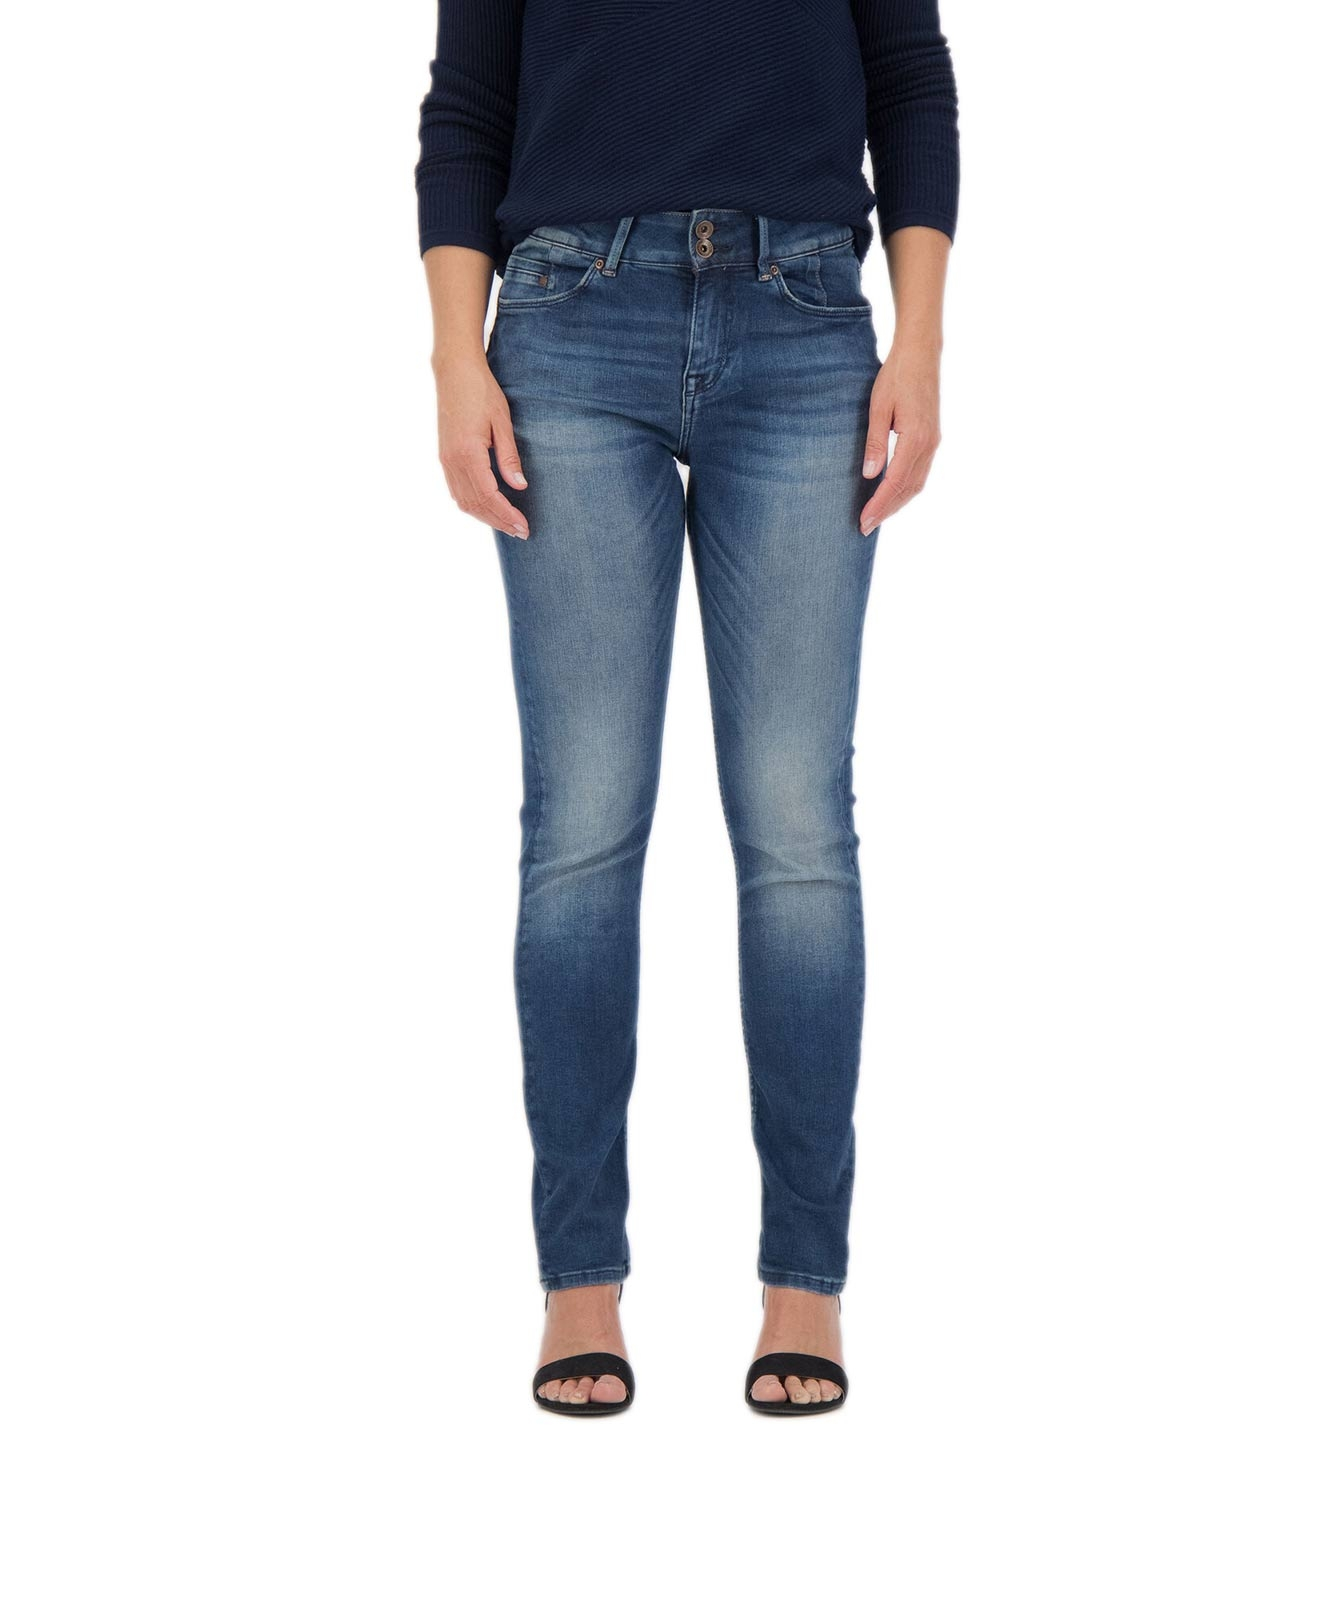 Hosen - Garcia High Waisted Jeans Caro Curved Slim in Vintage Used  - Onlineshop Jeans Meile